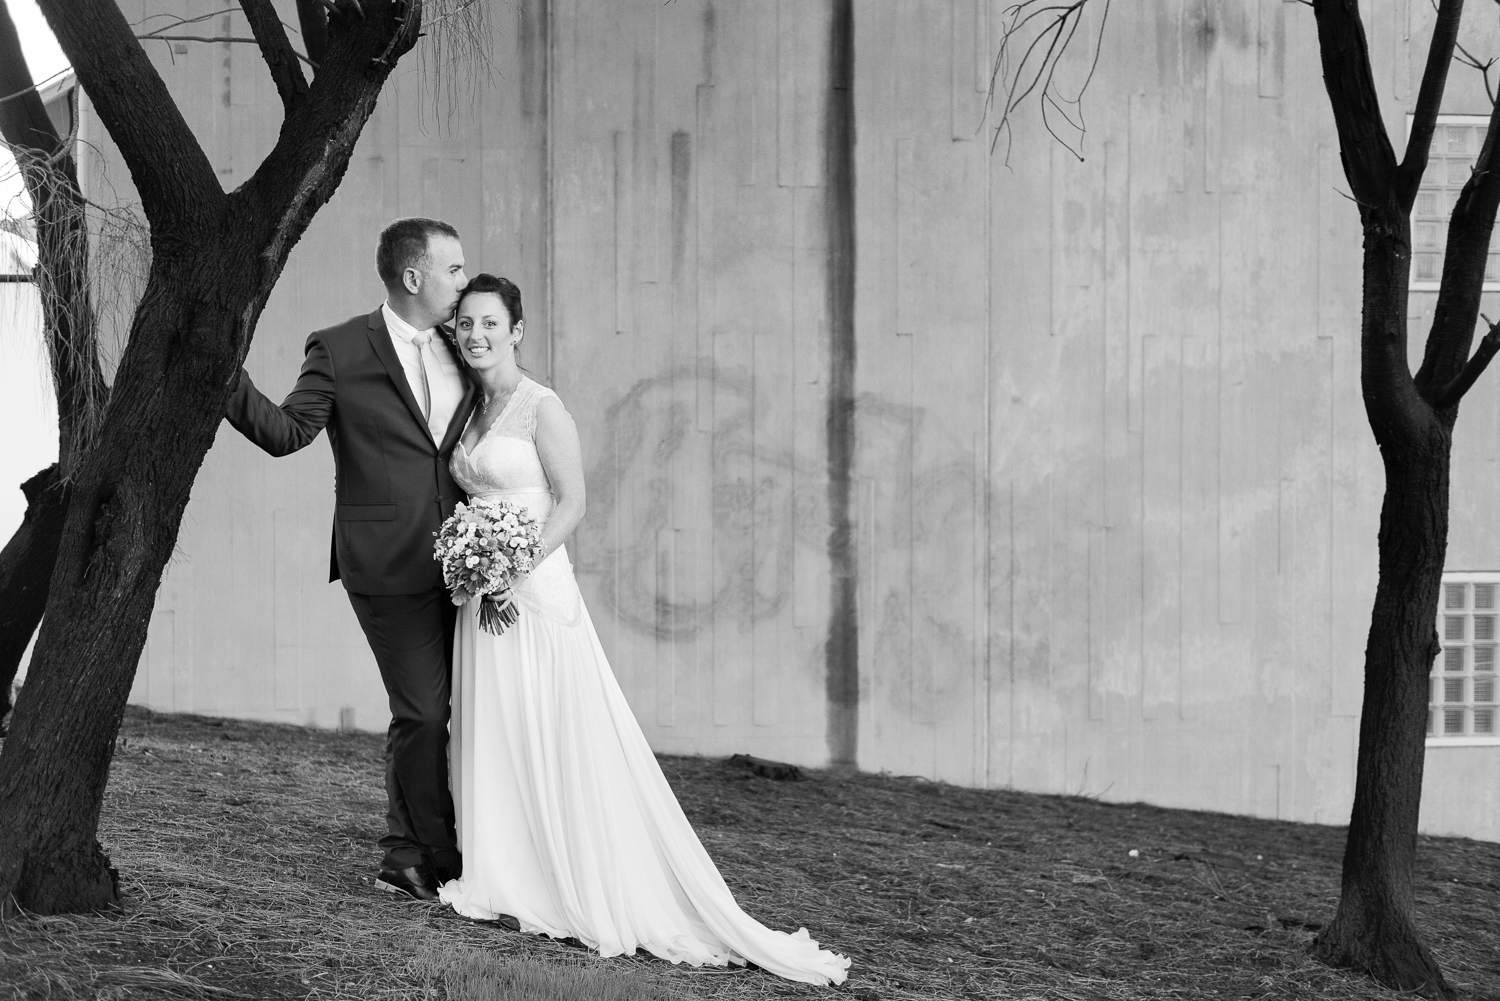 Melbourne-wedding-at-the-sub-station-an-old-power-station-Rhapsody-Road-Photography-Emma-Lambe-7.jpg